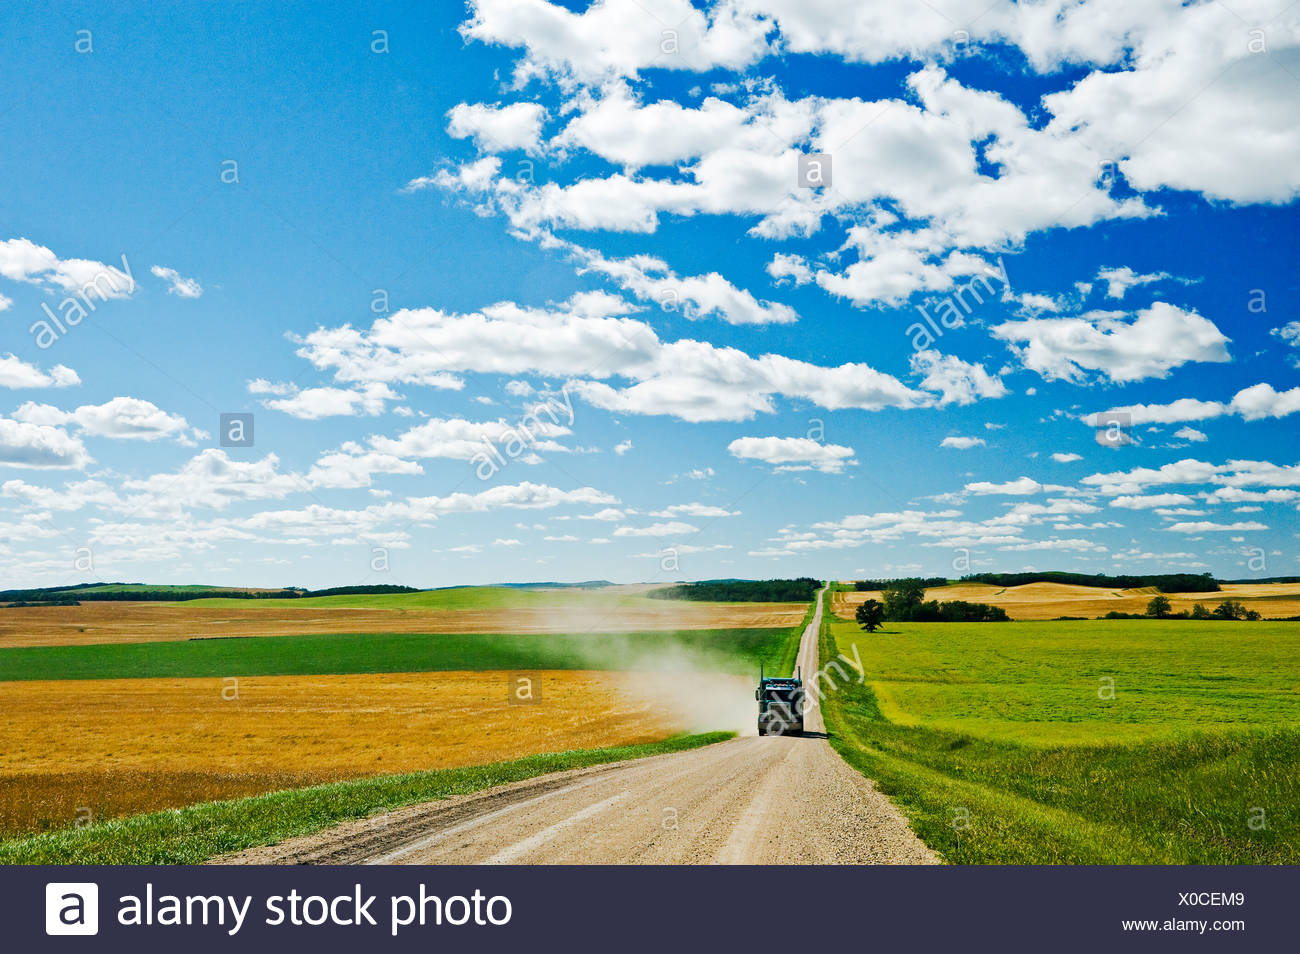 Gravel Truck Stock Photos & Gravel Truck Stock Images - Alamy